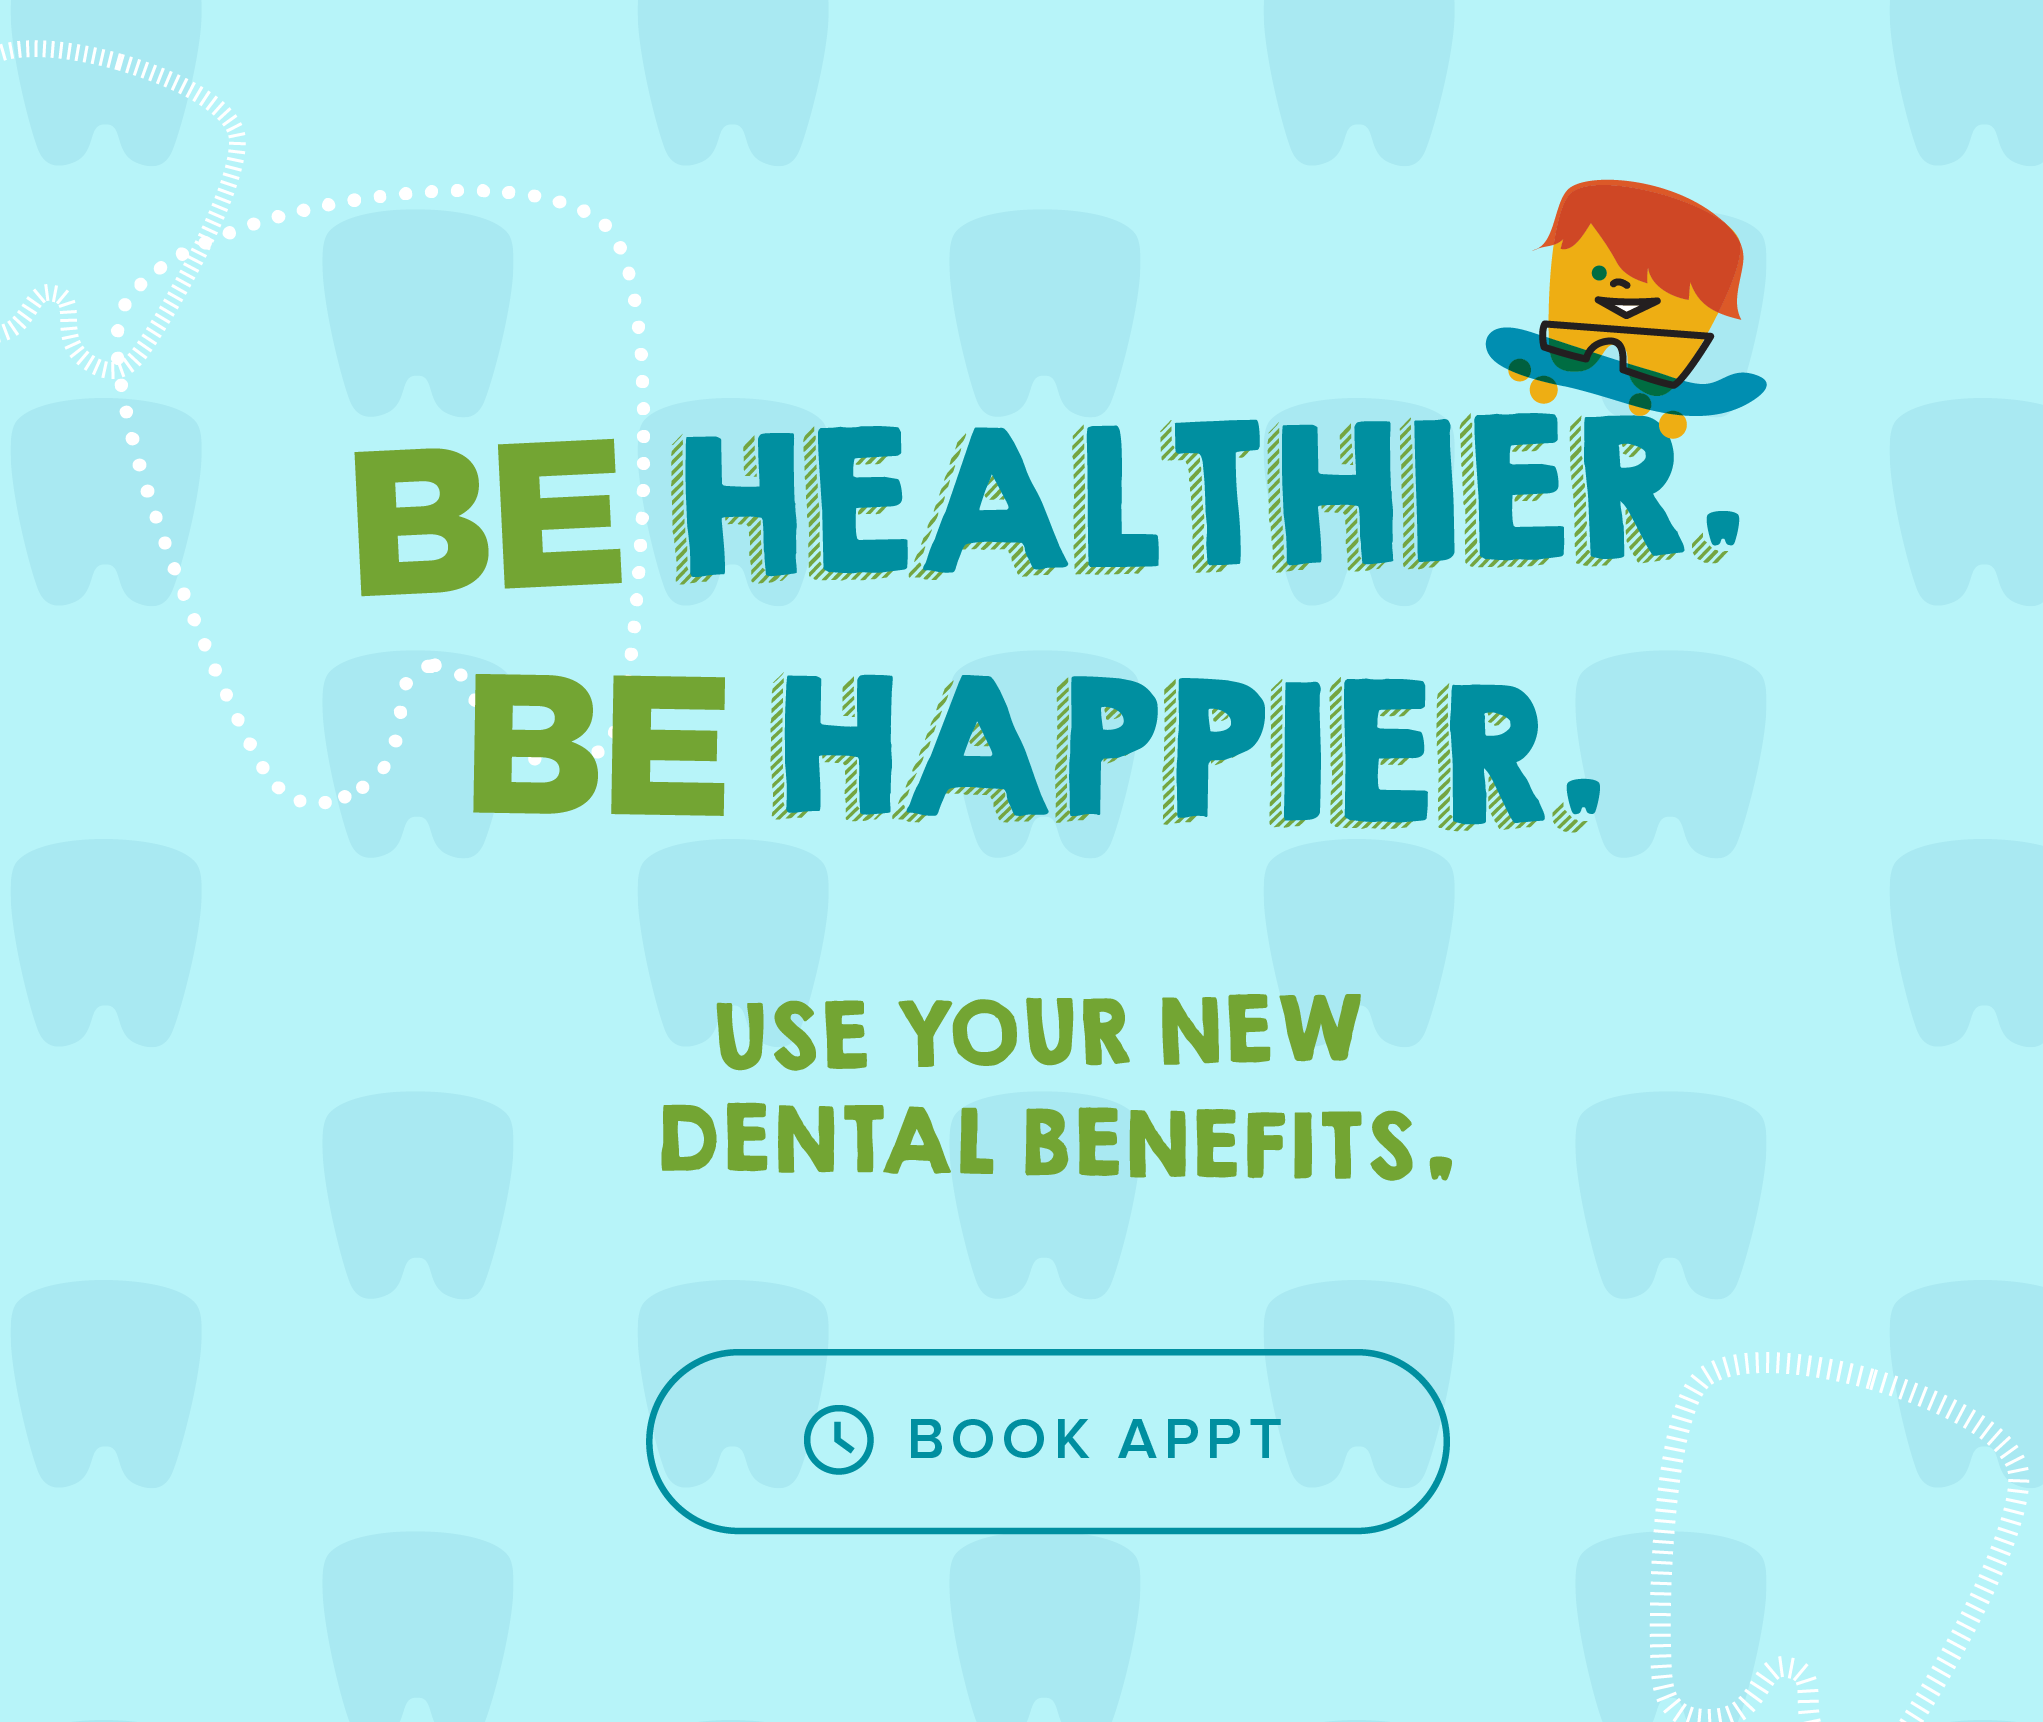 Be Heathier, Be Happier. Use your new dental benefits. - My Kid's Dentist & Orthodontics